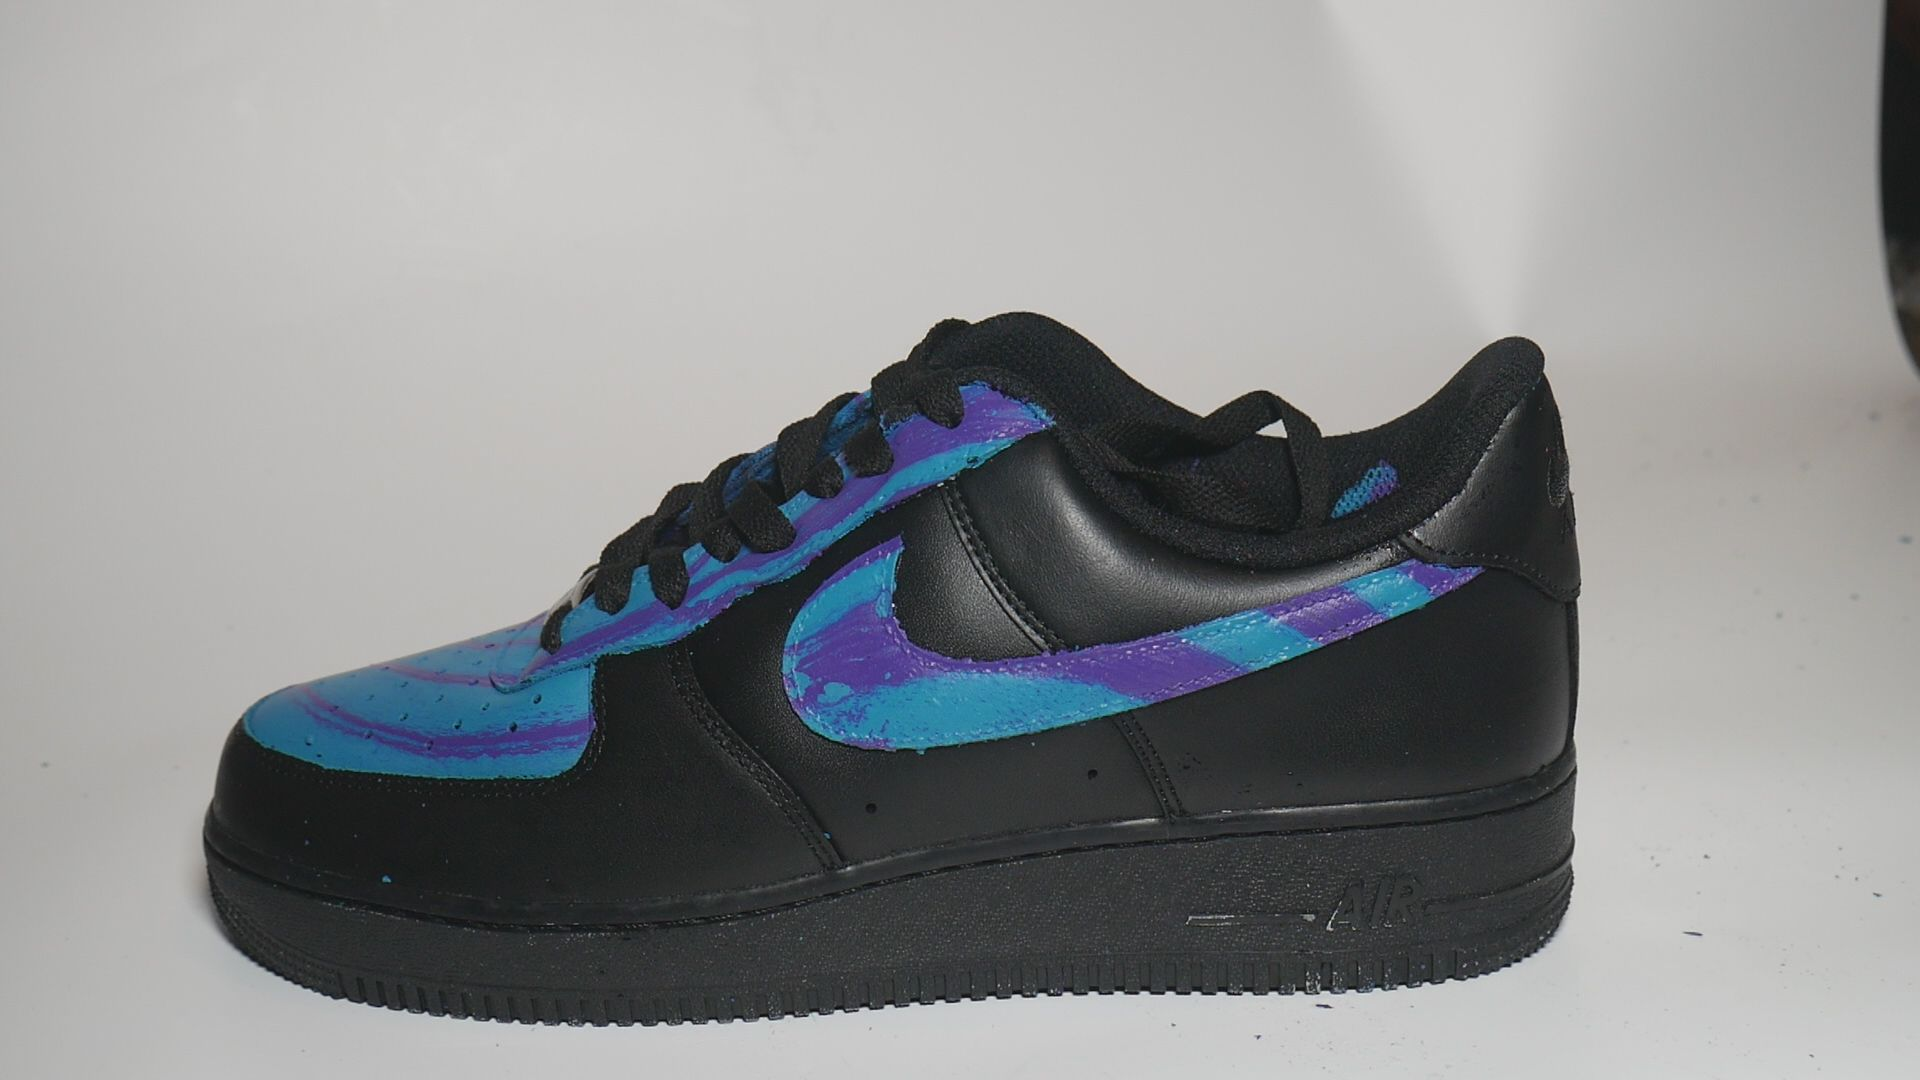 I hydro dipped a black AF1 with blue and purple spray